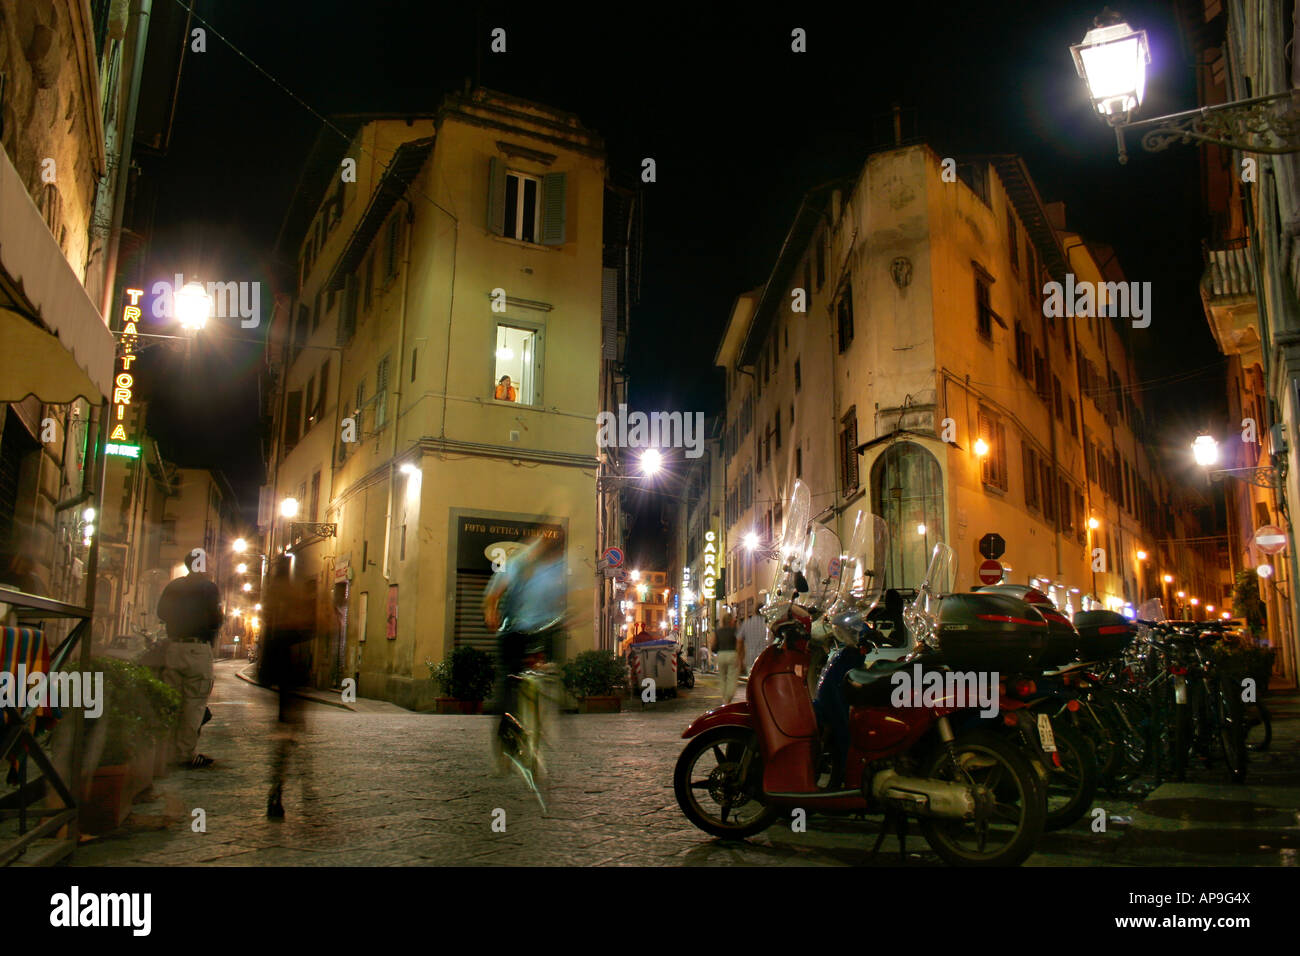 a lively and atmospheric alley lane at night in Florence | atmosphärisch dichte, belebte Gasse nachts in Florenz - Stock Image